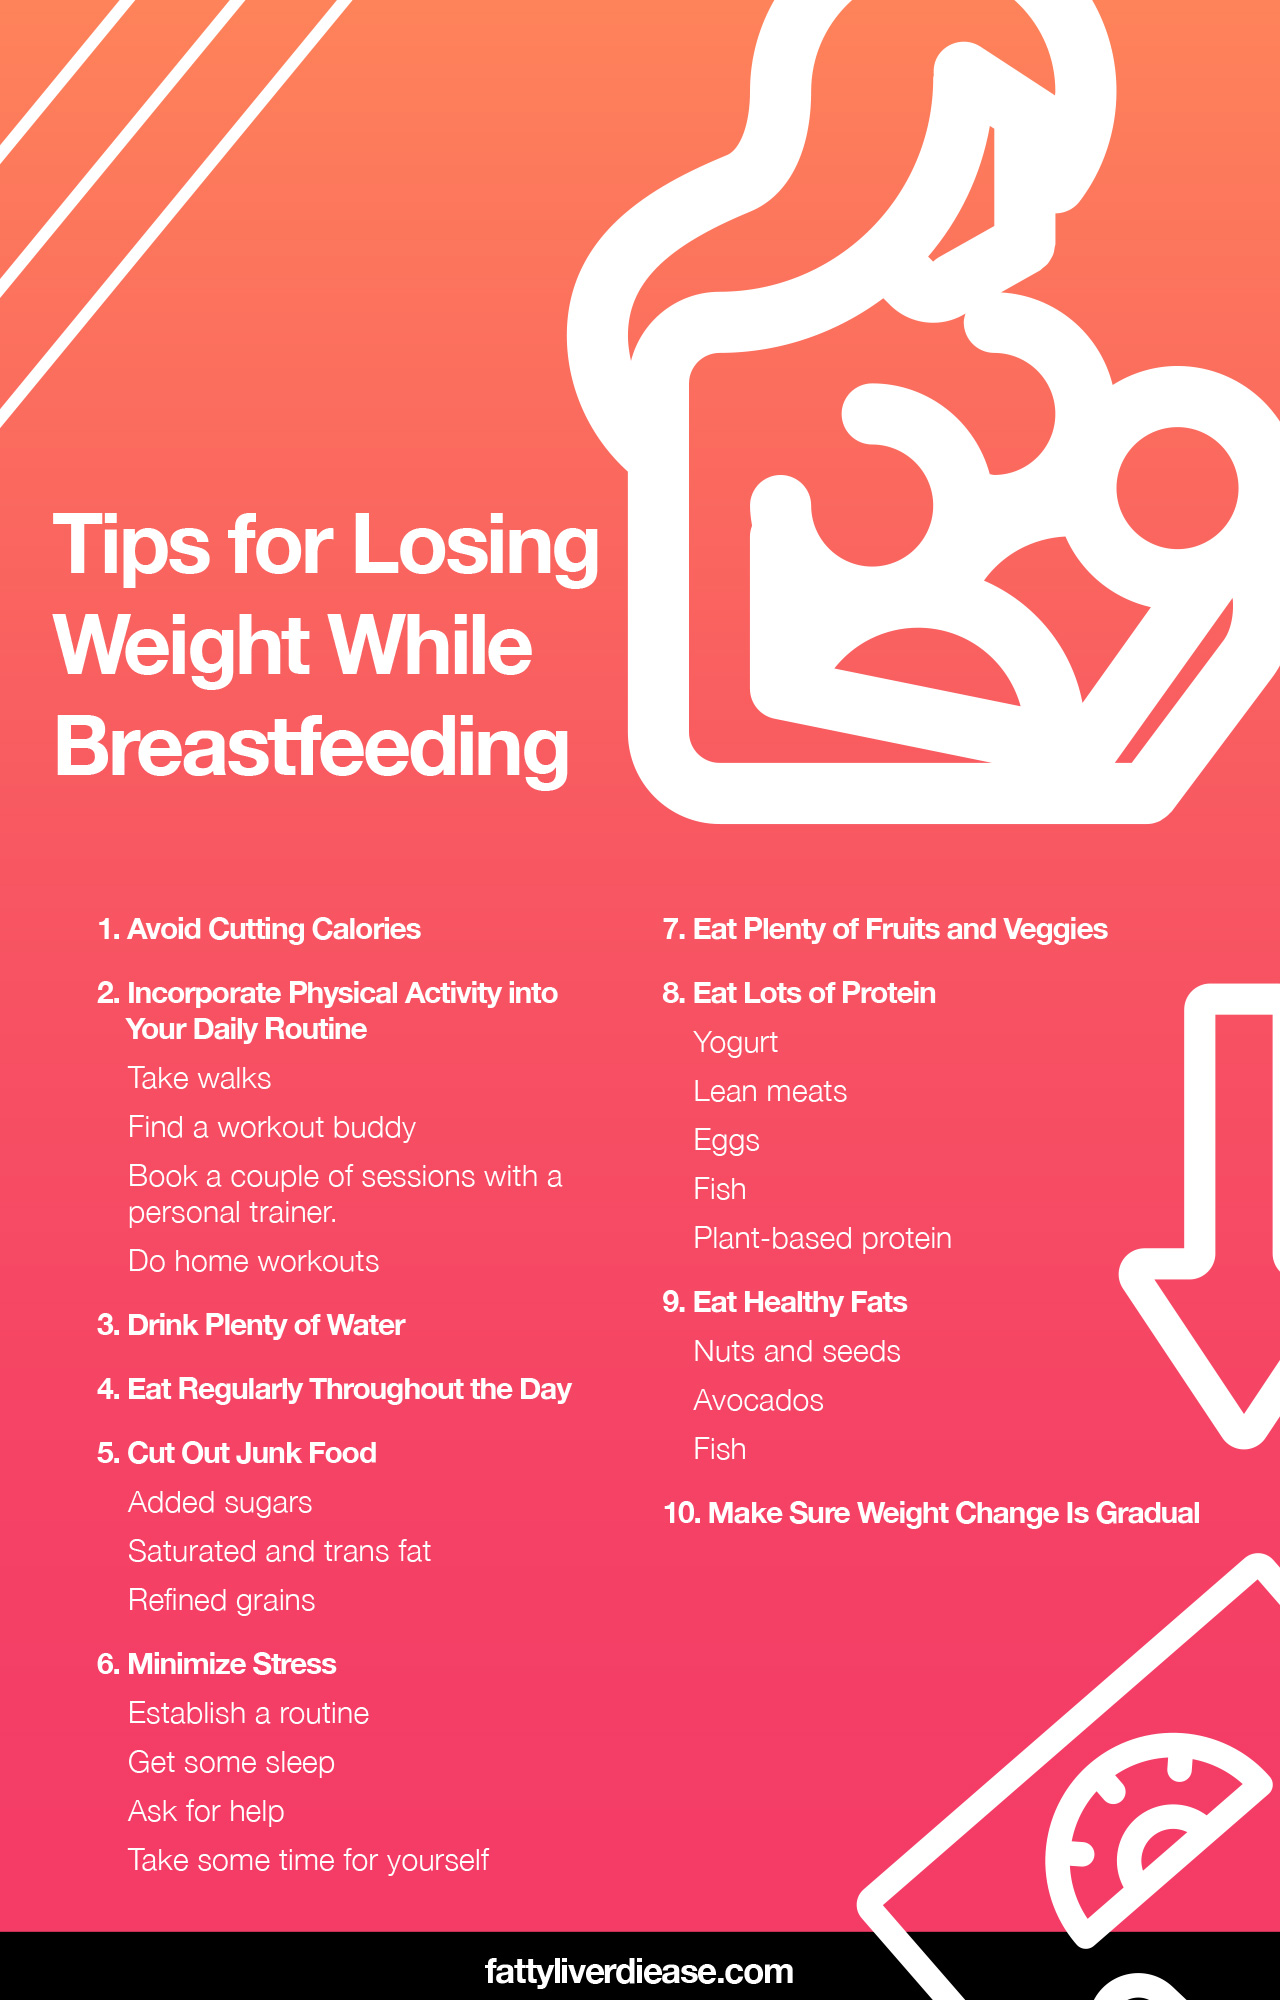 How to Lose Weight While Breastfeeding